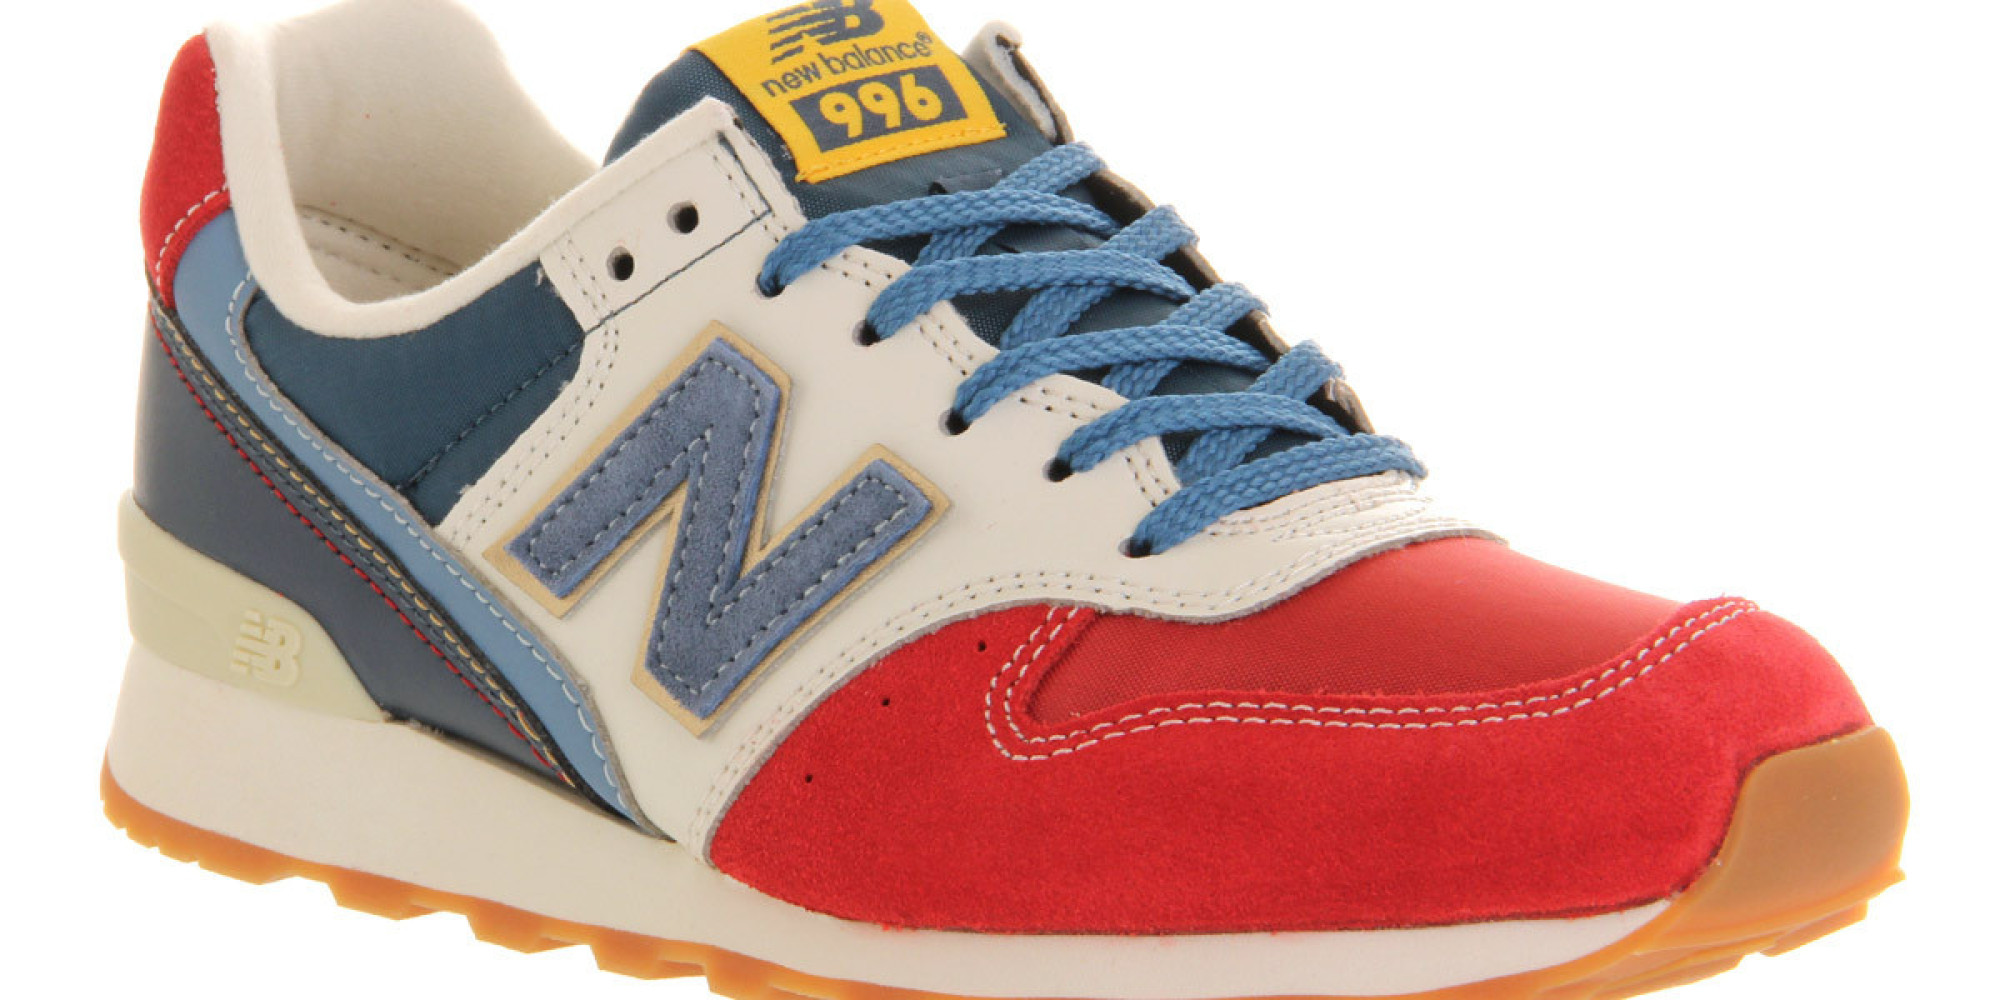 new balance shoe styles new balance 550